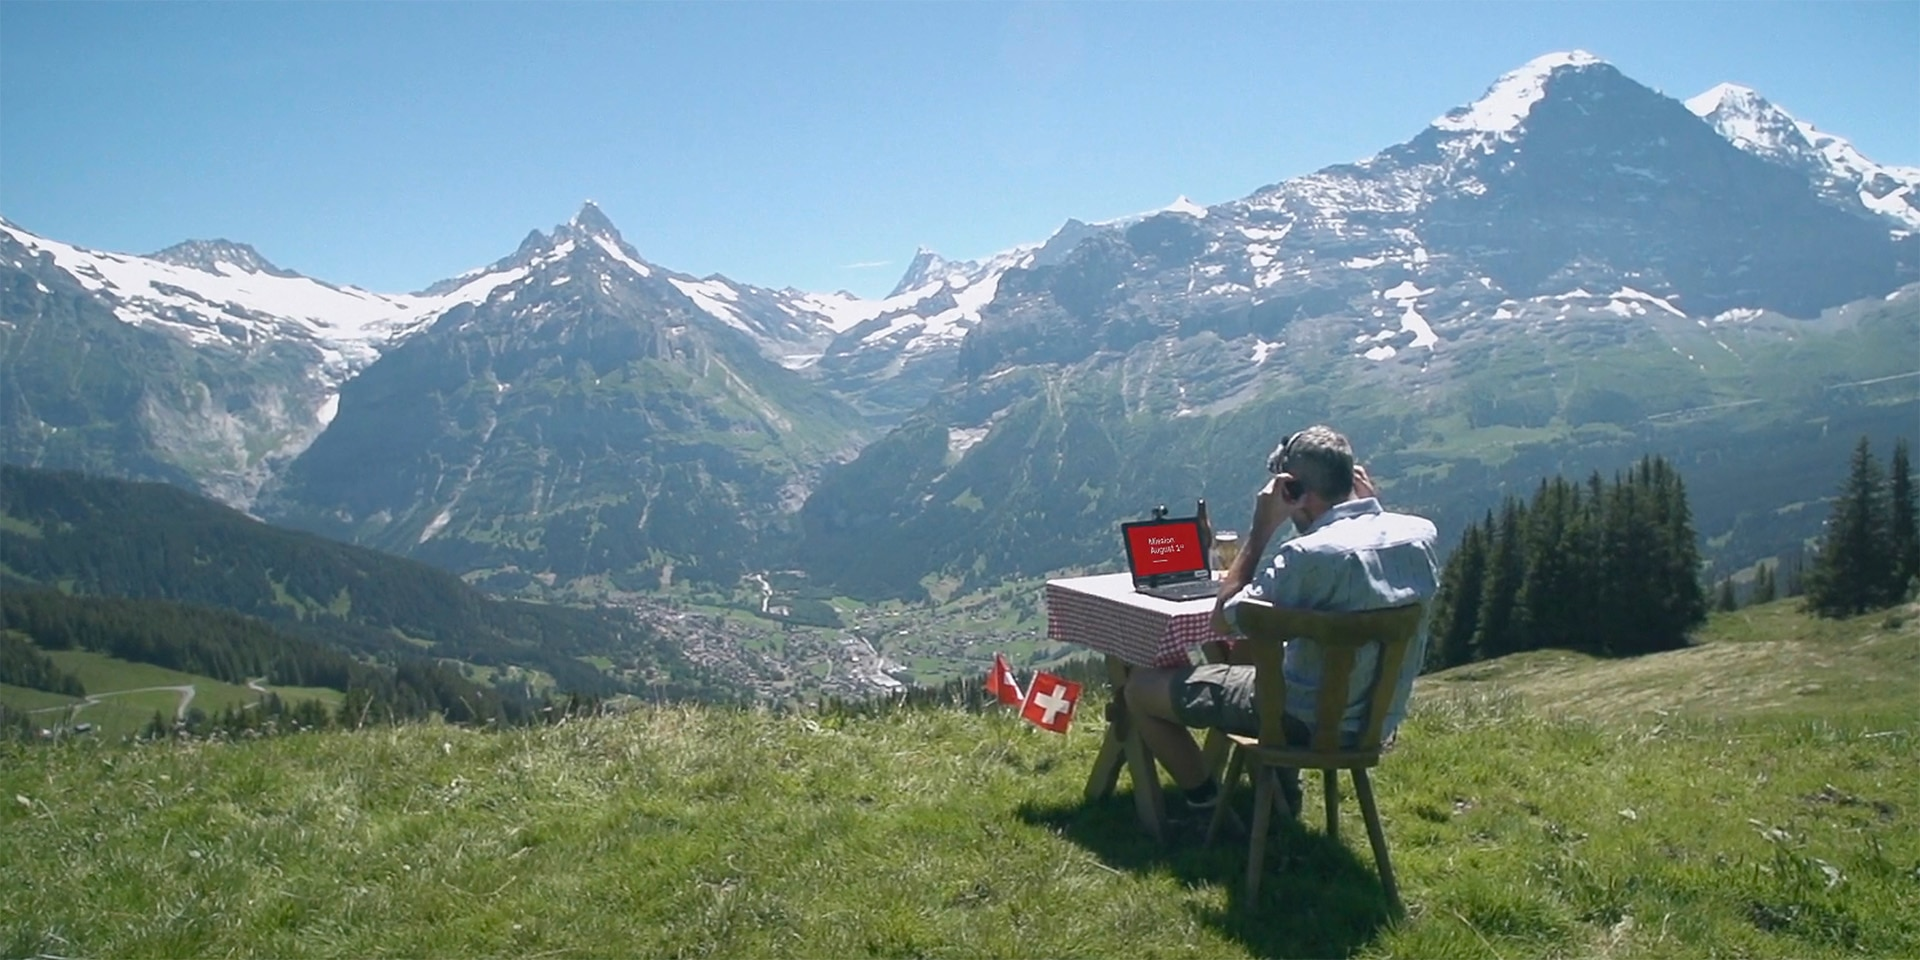 A man is sitting at a table in the Alps, working on a laptop.